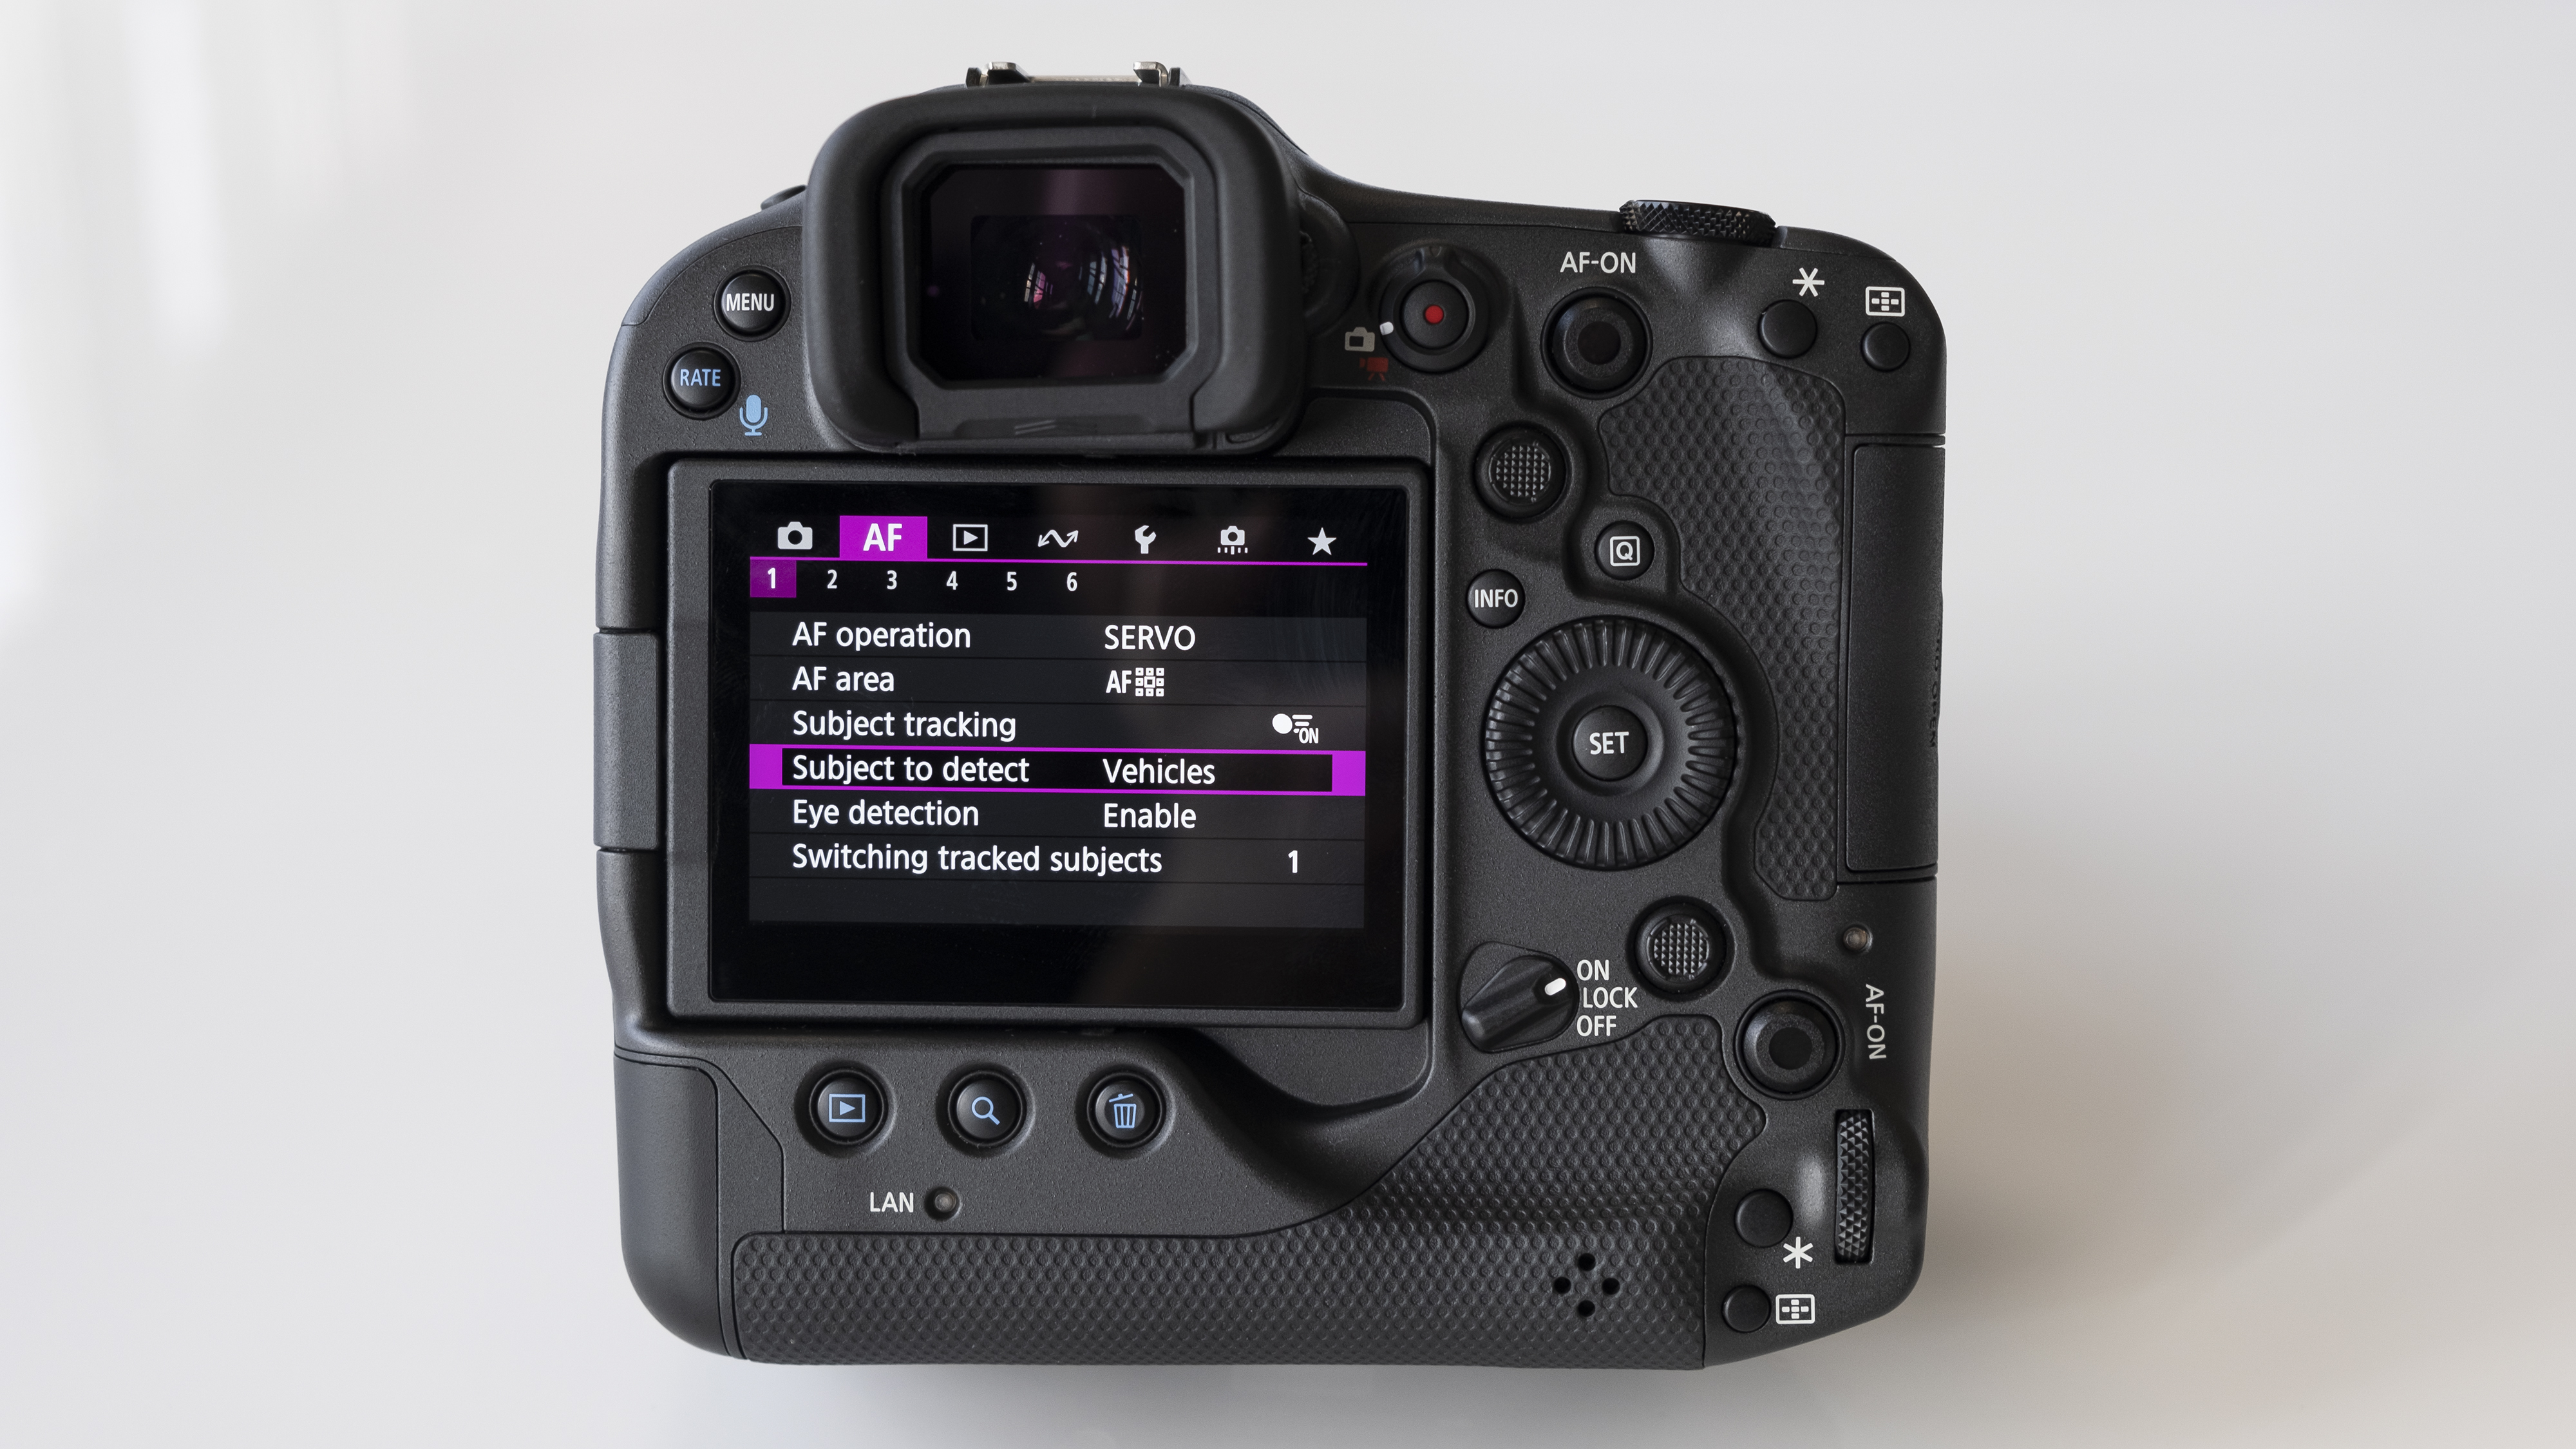 The rear screen of the Canon EOS R3 mirrorless camera